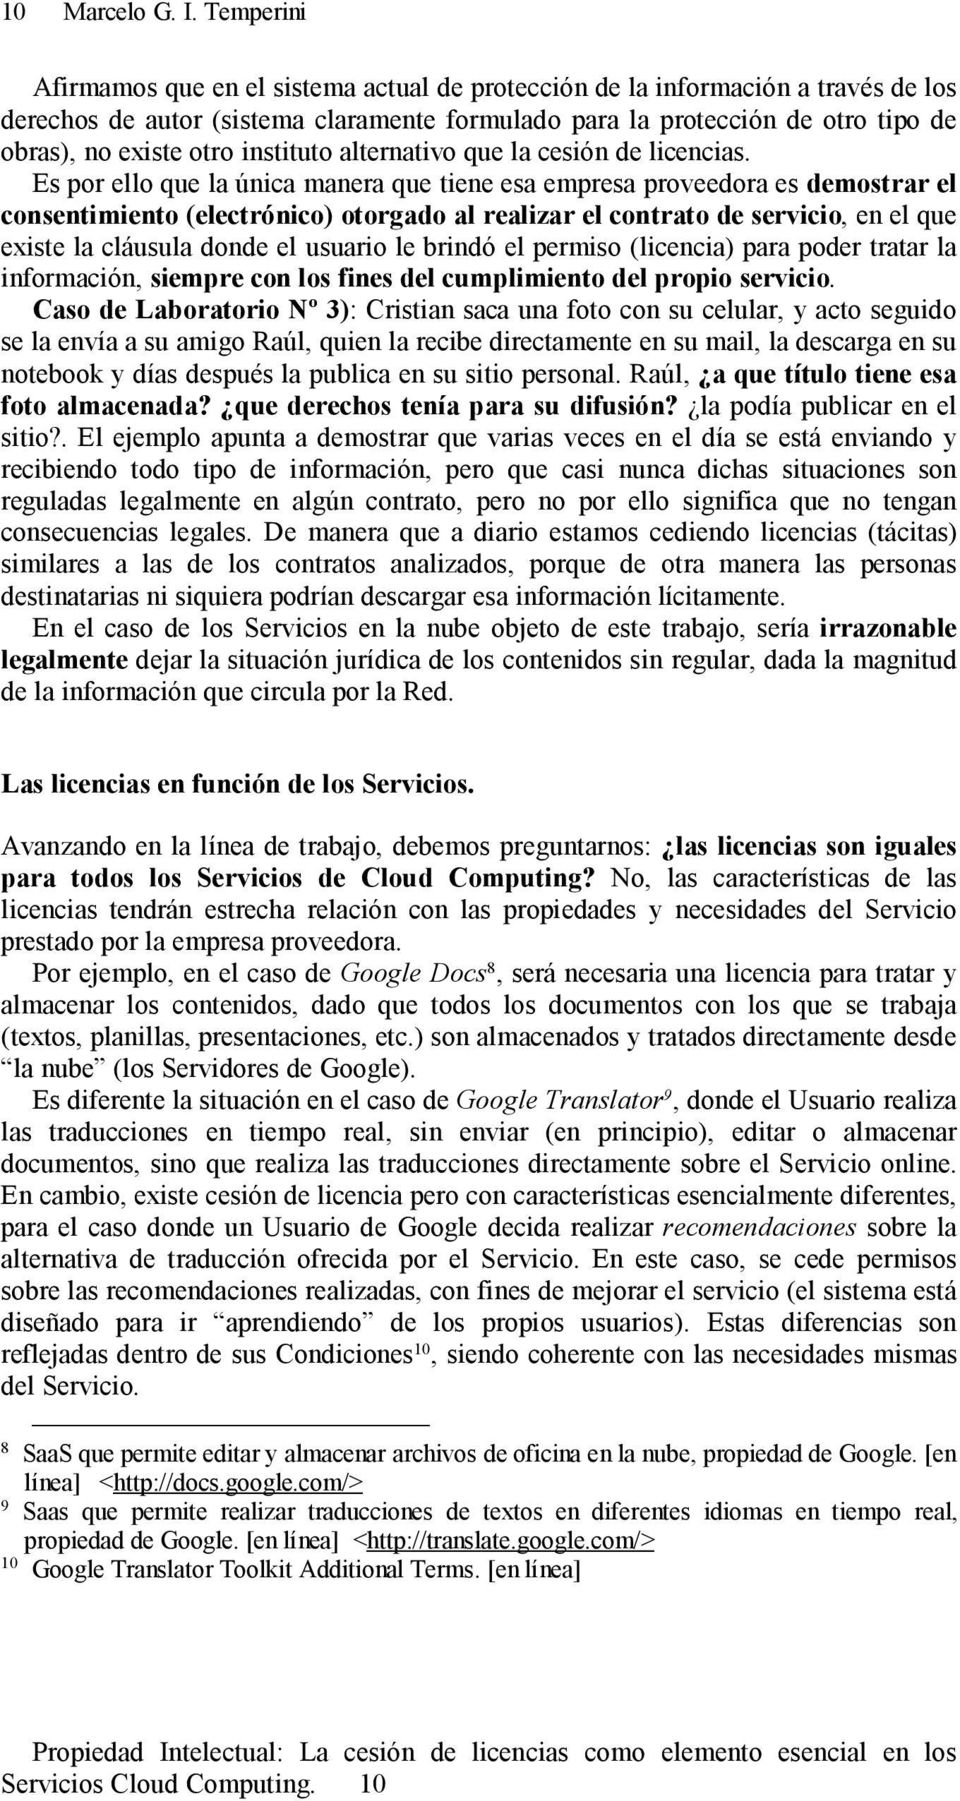 instituto alternativo que la cesión de licencias.